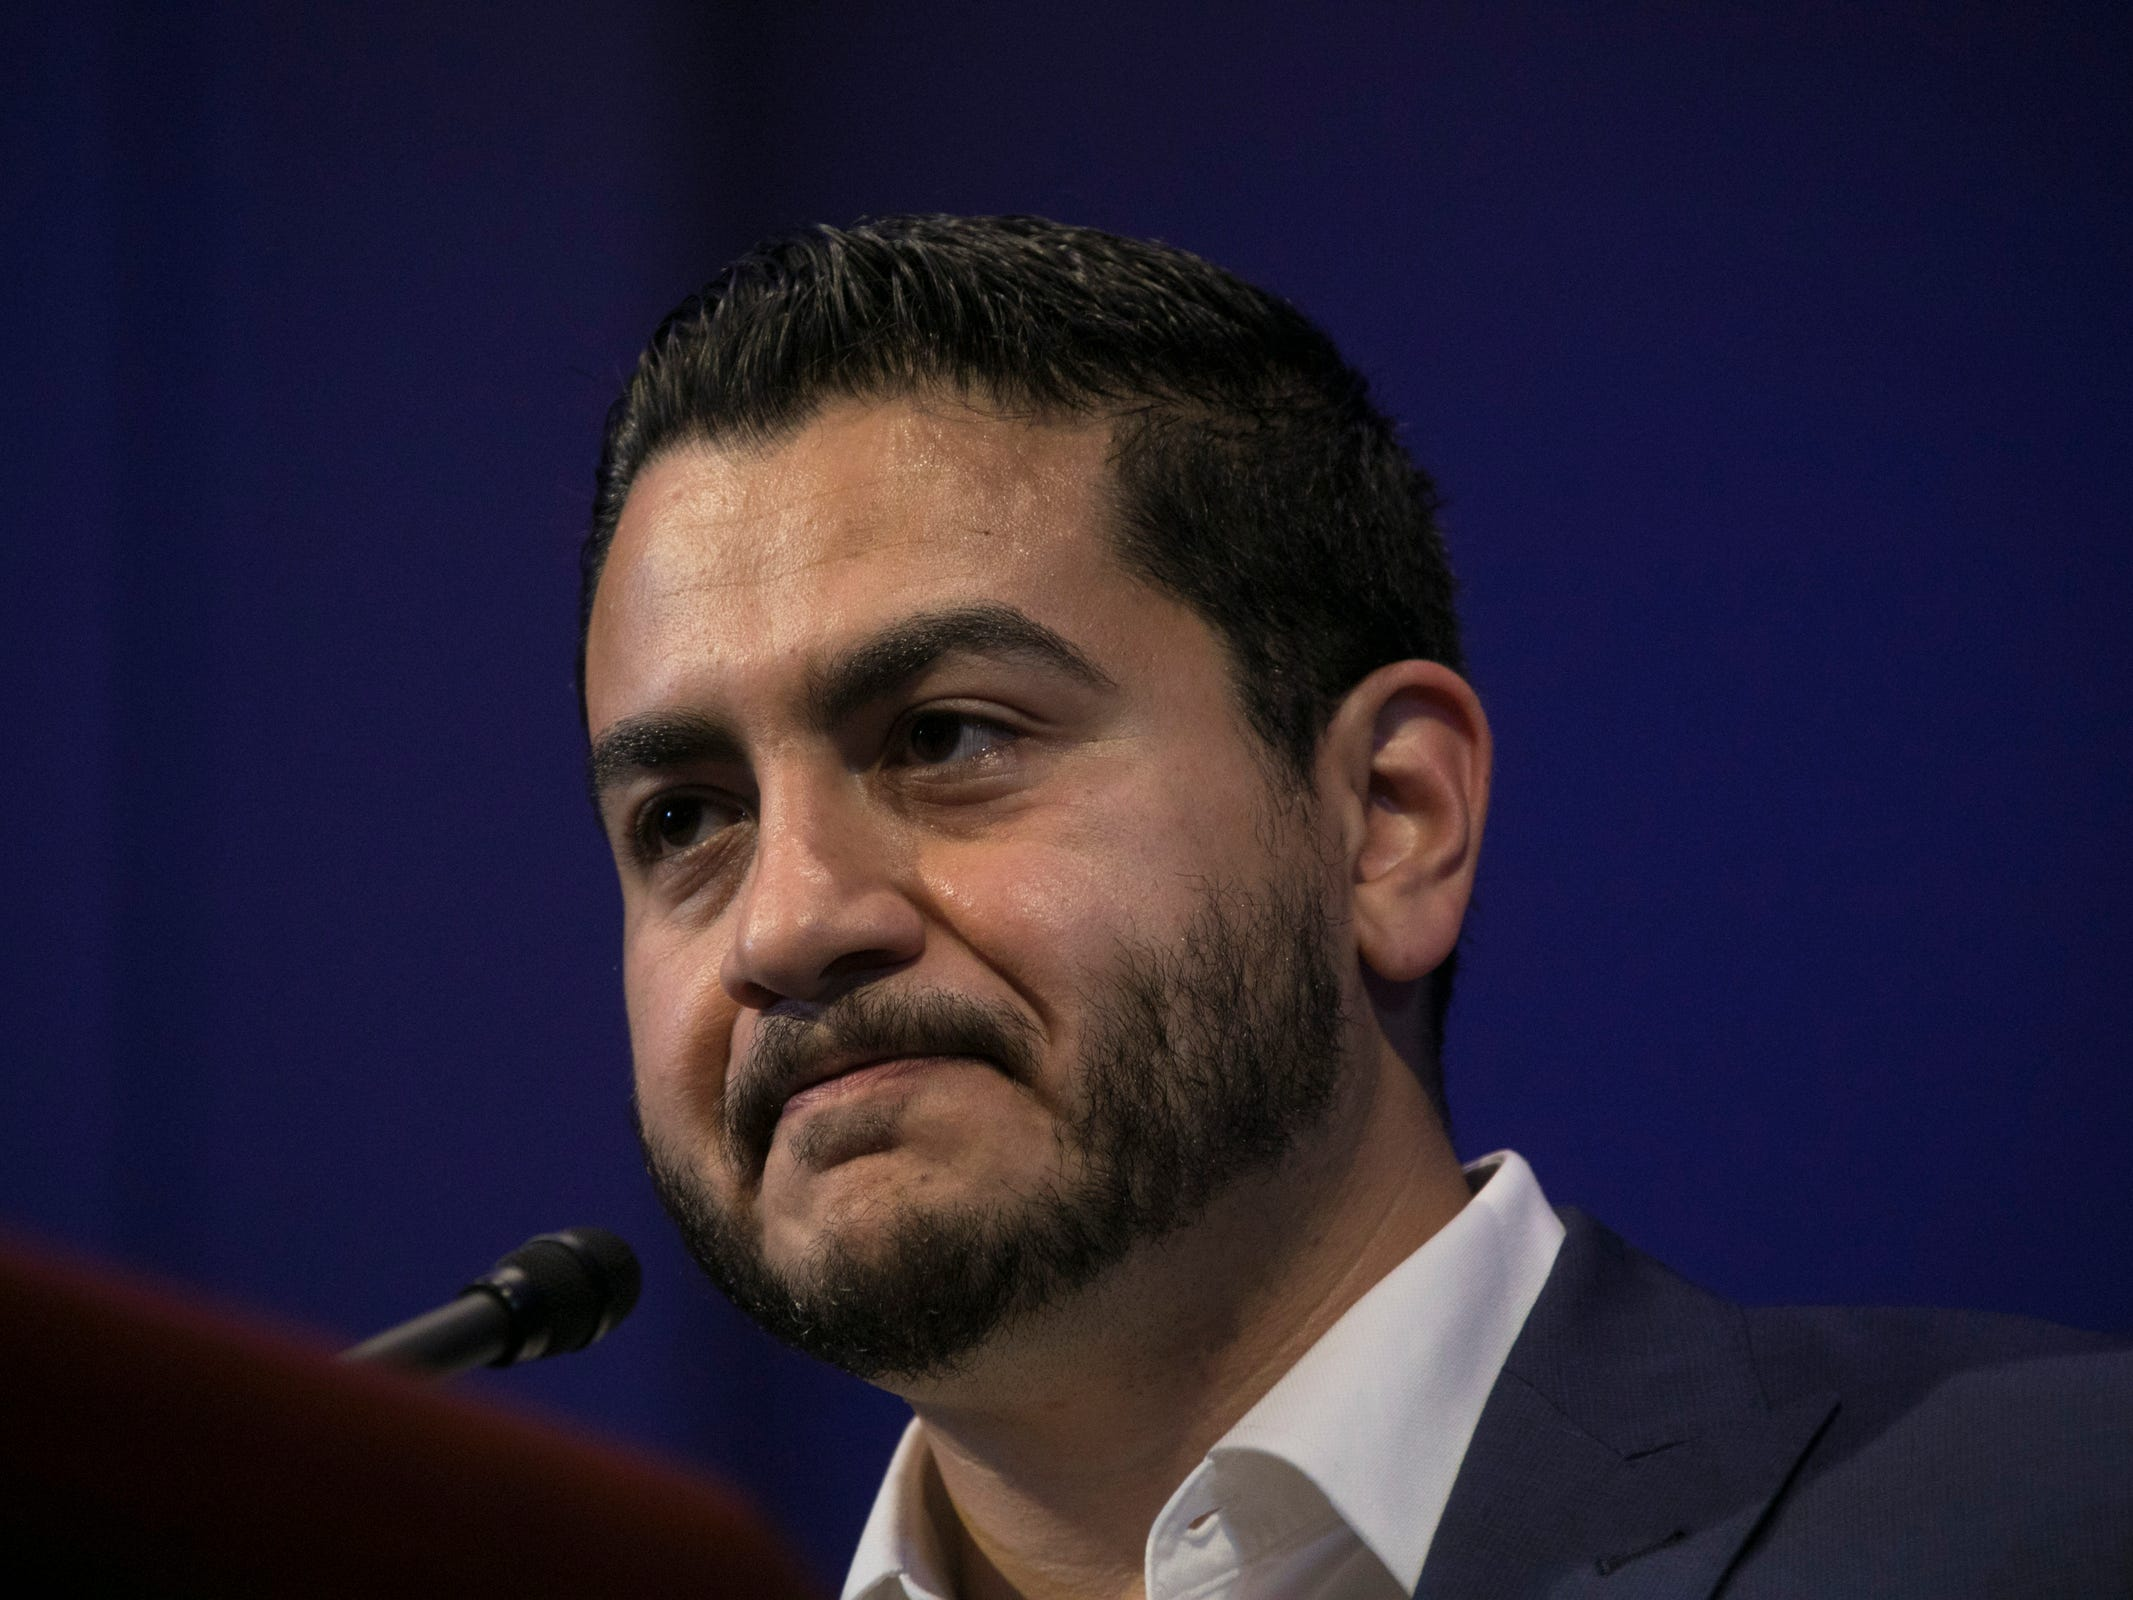 Democratic gubernatorial candidate Abdul El-Sayed delivers his concession speech to his supporters at the Grand Riverview Ballroom at Cobo Center in Detroit Tuesday, August 7, 2018.